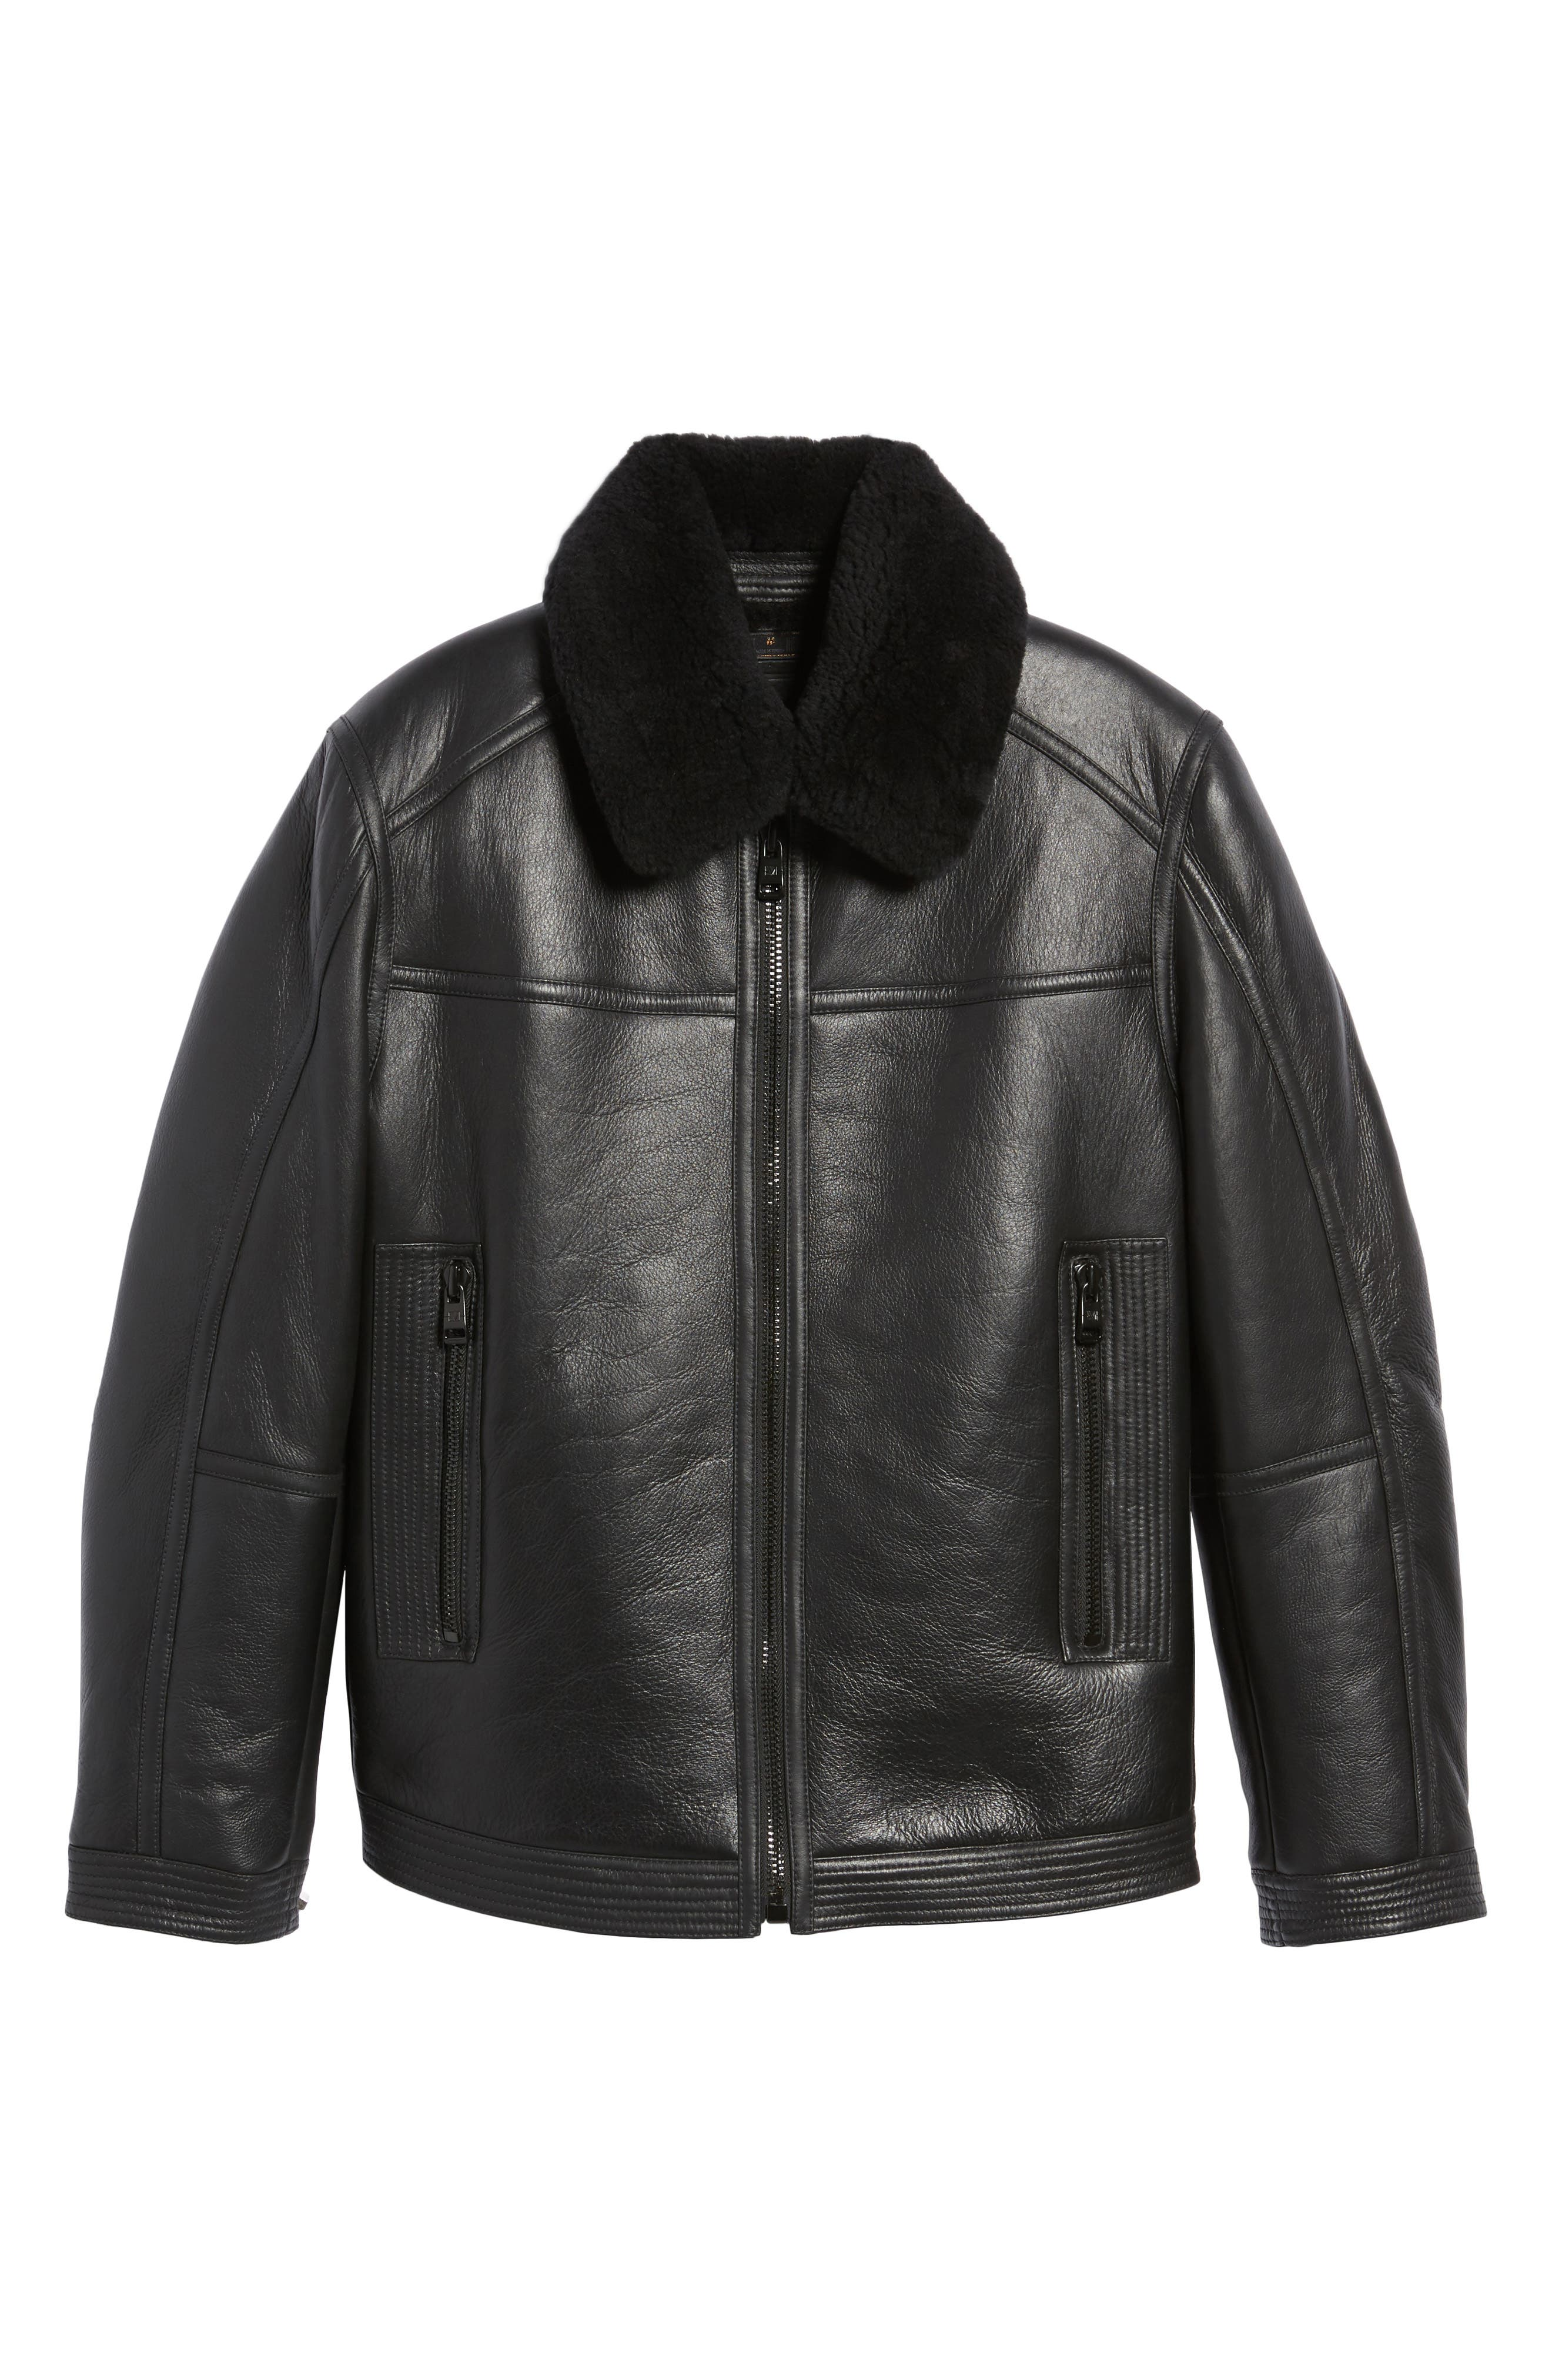 Leather Jacket with Genuine Shearling Collar,                             Alternate thumbnail 6, color,                             Black